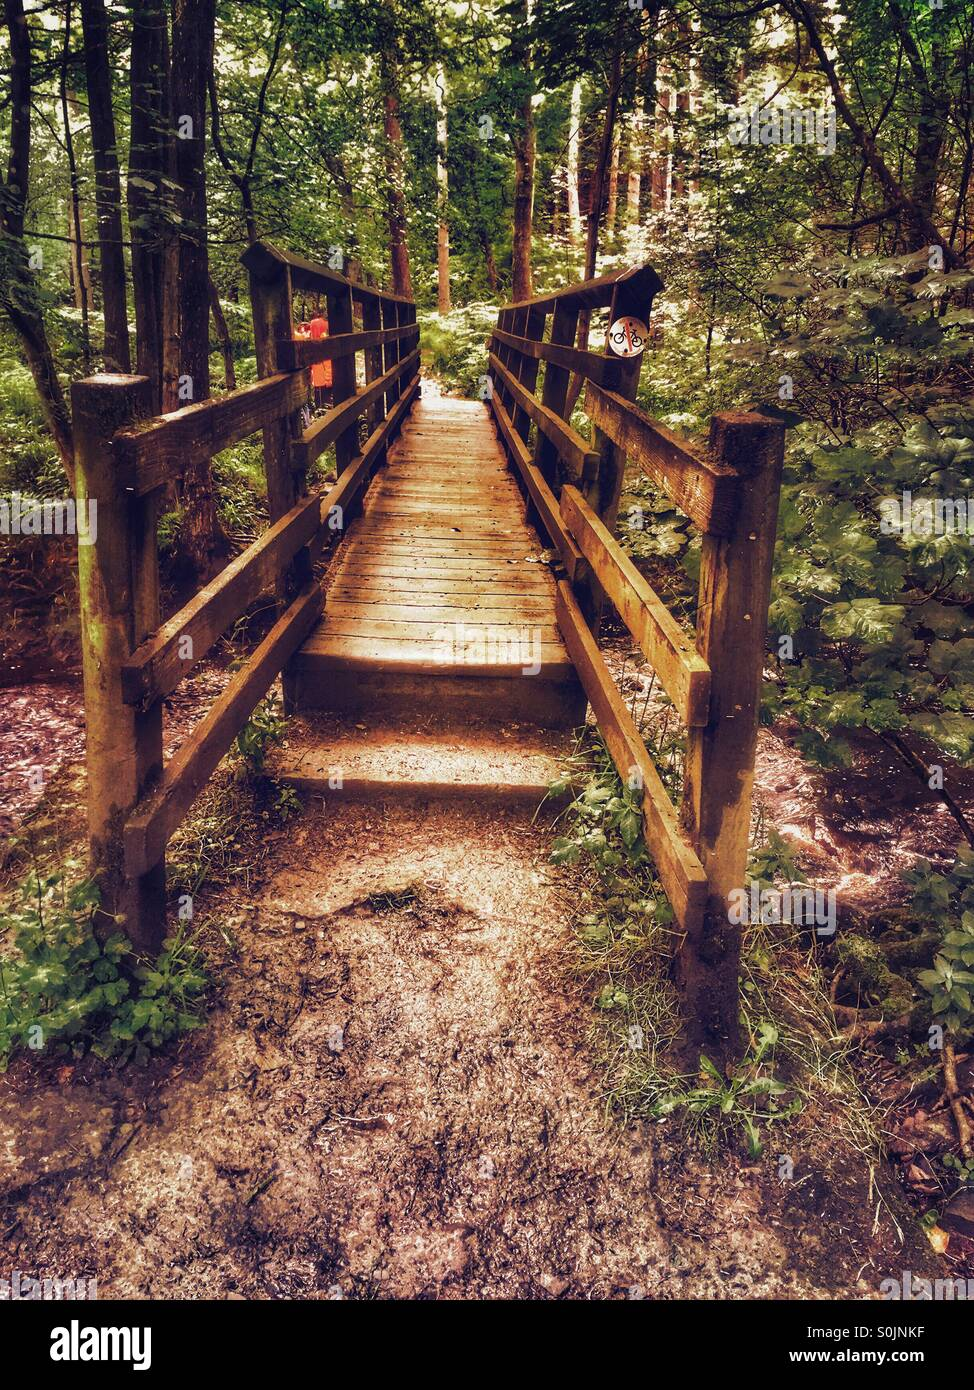 Bridge in the forest - Stock Image